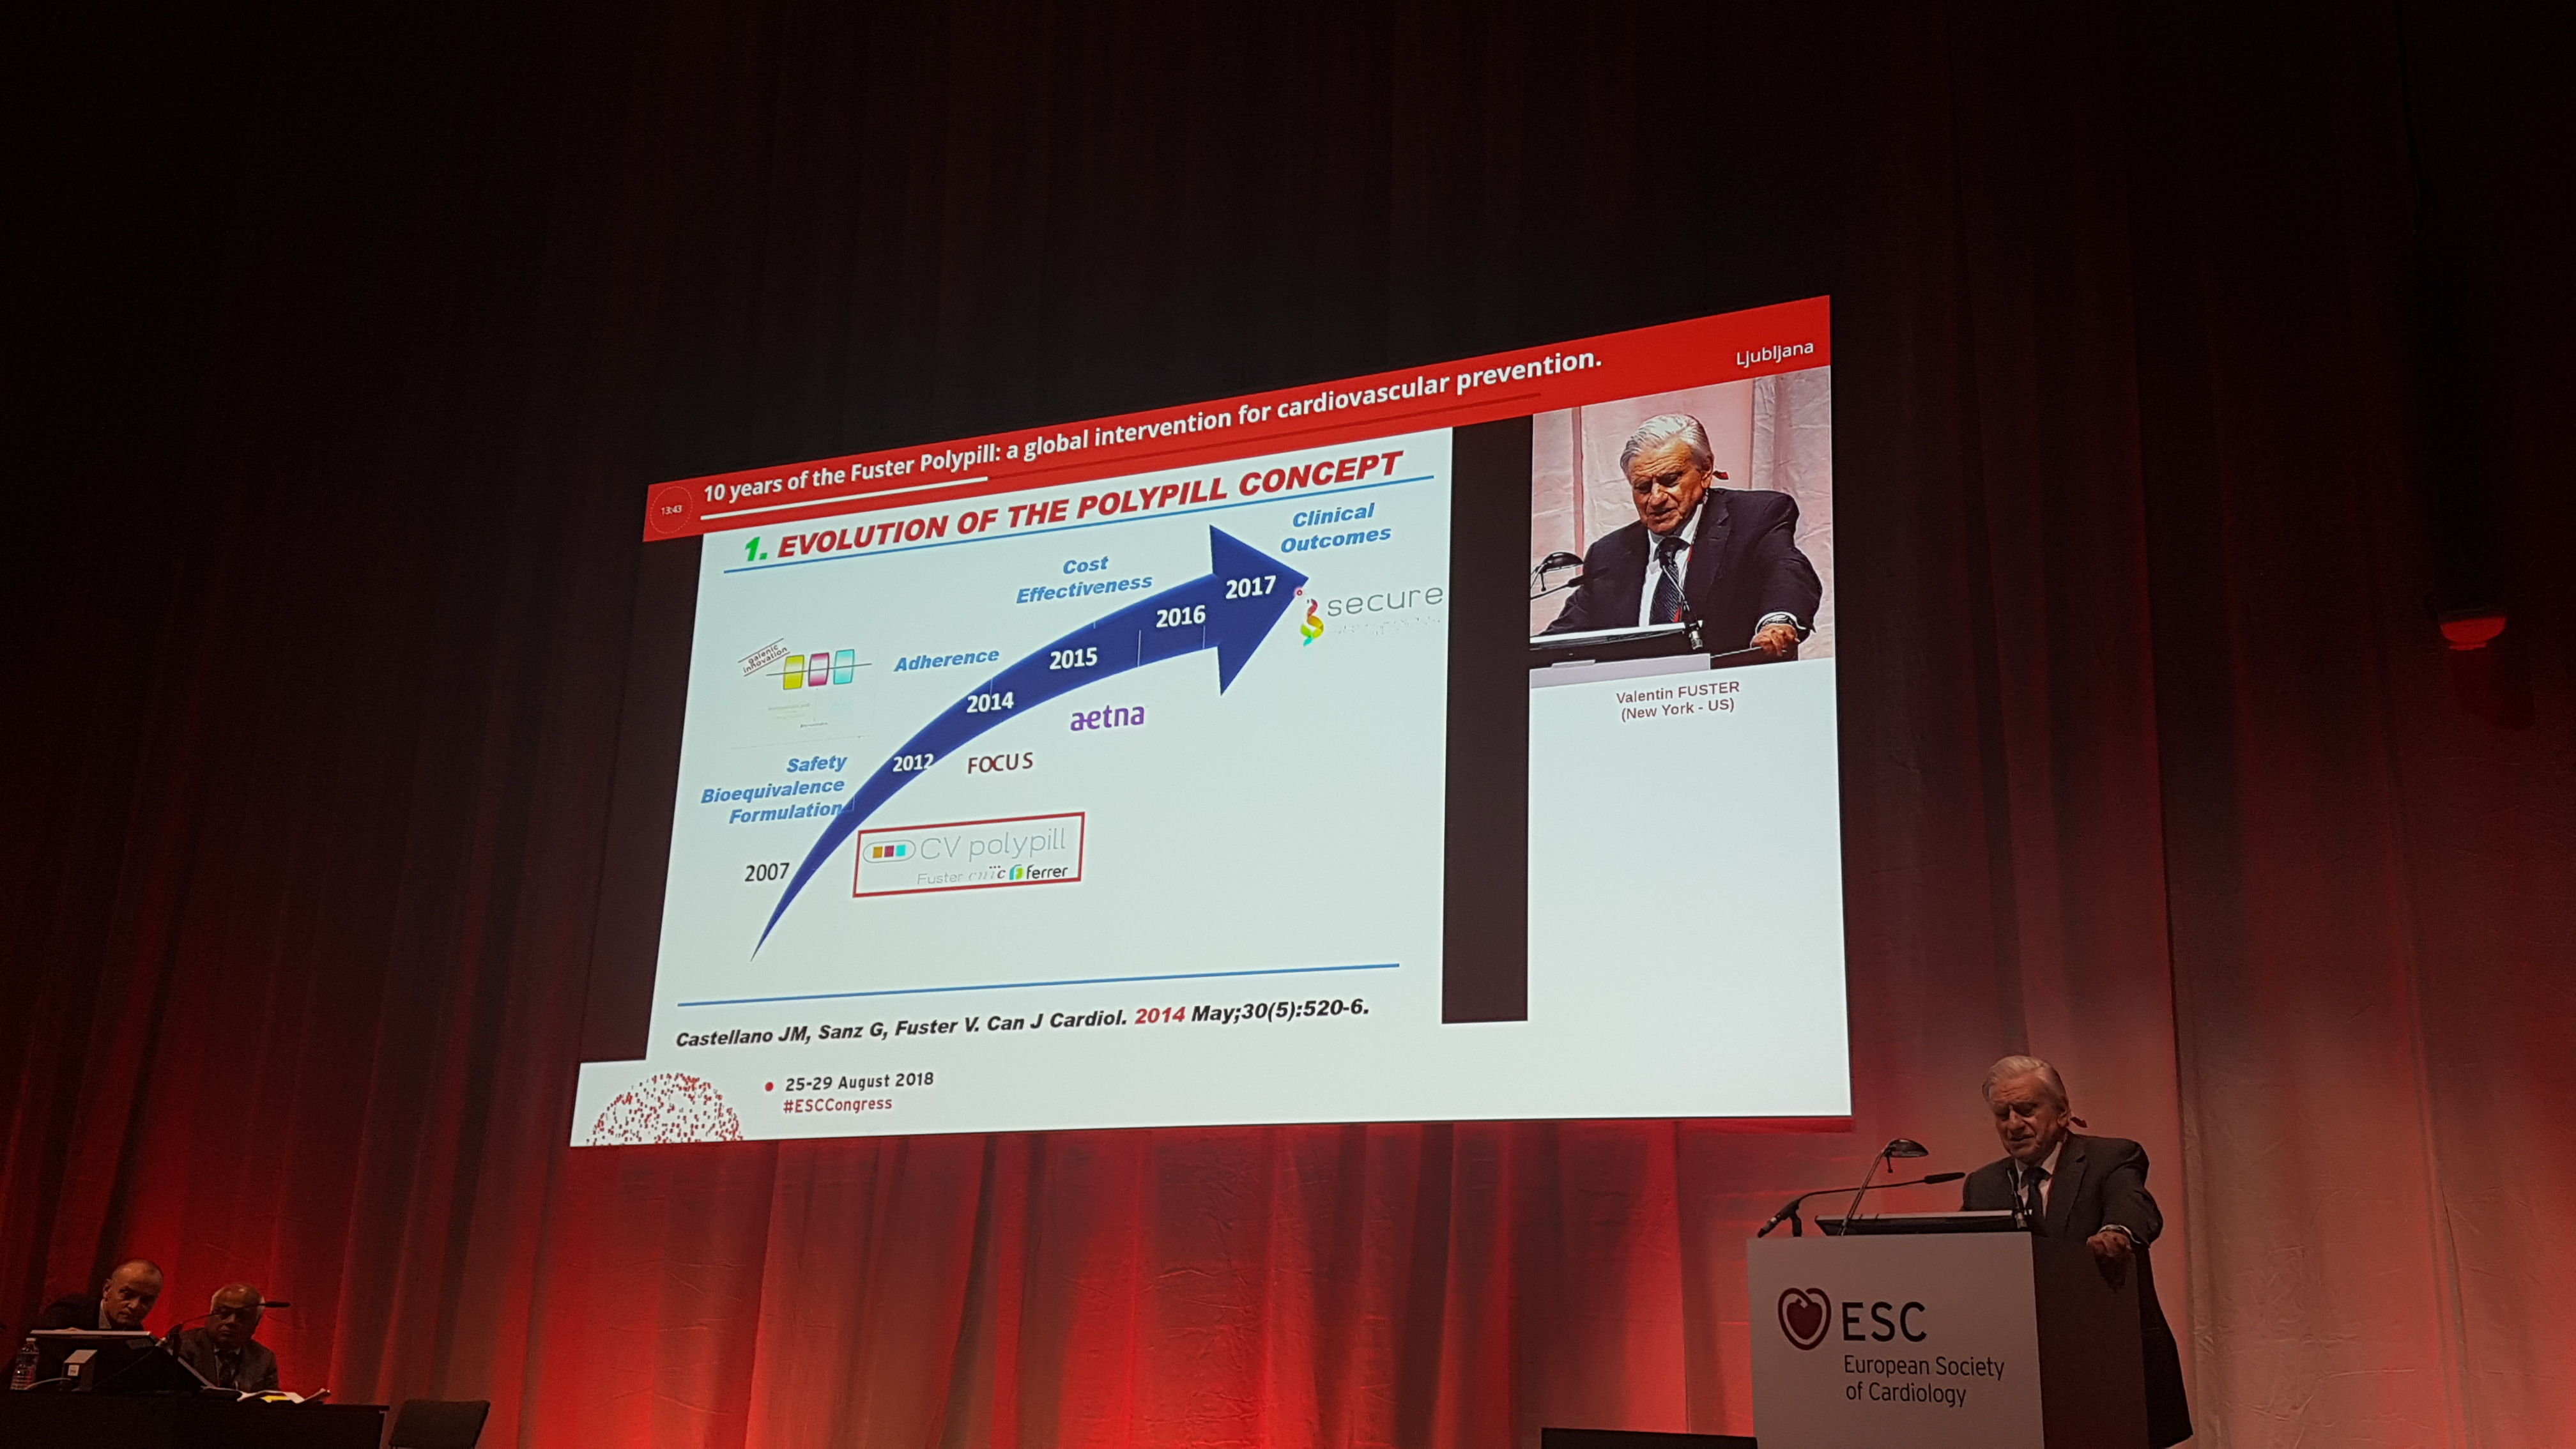 Dr. Fuster at the SECURE Symposium at the ESC Congress 2018 in Munich